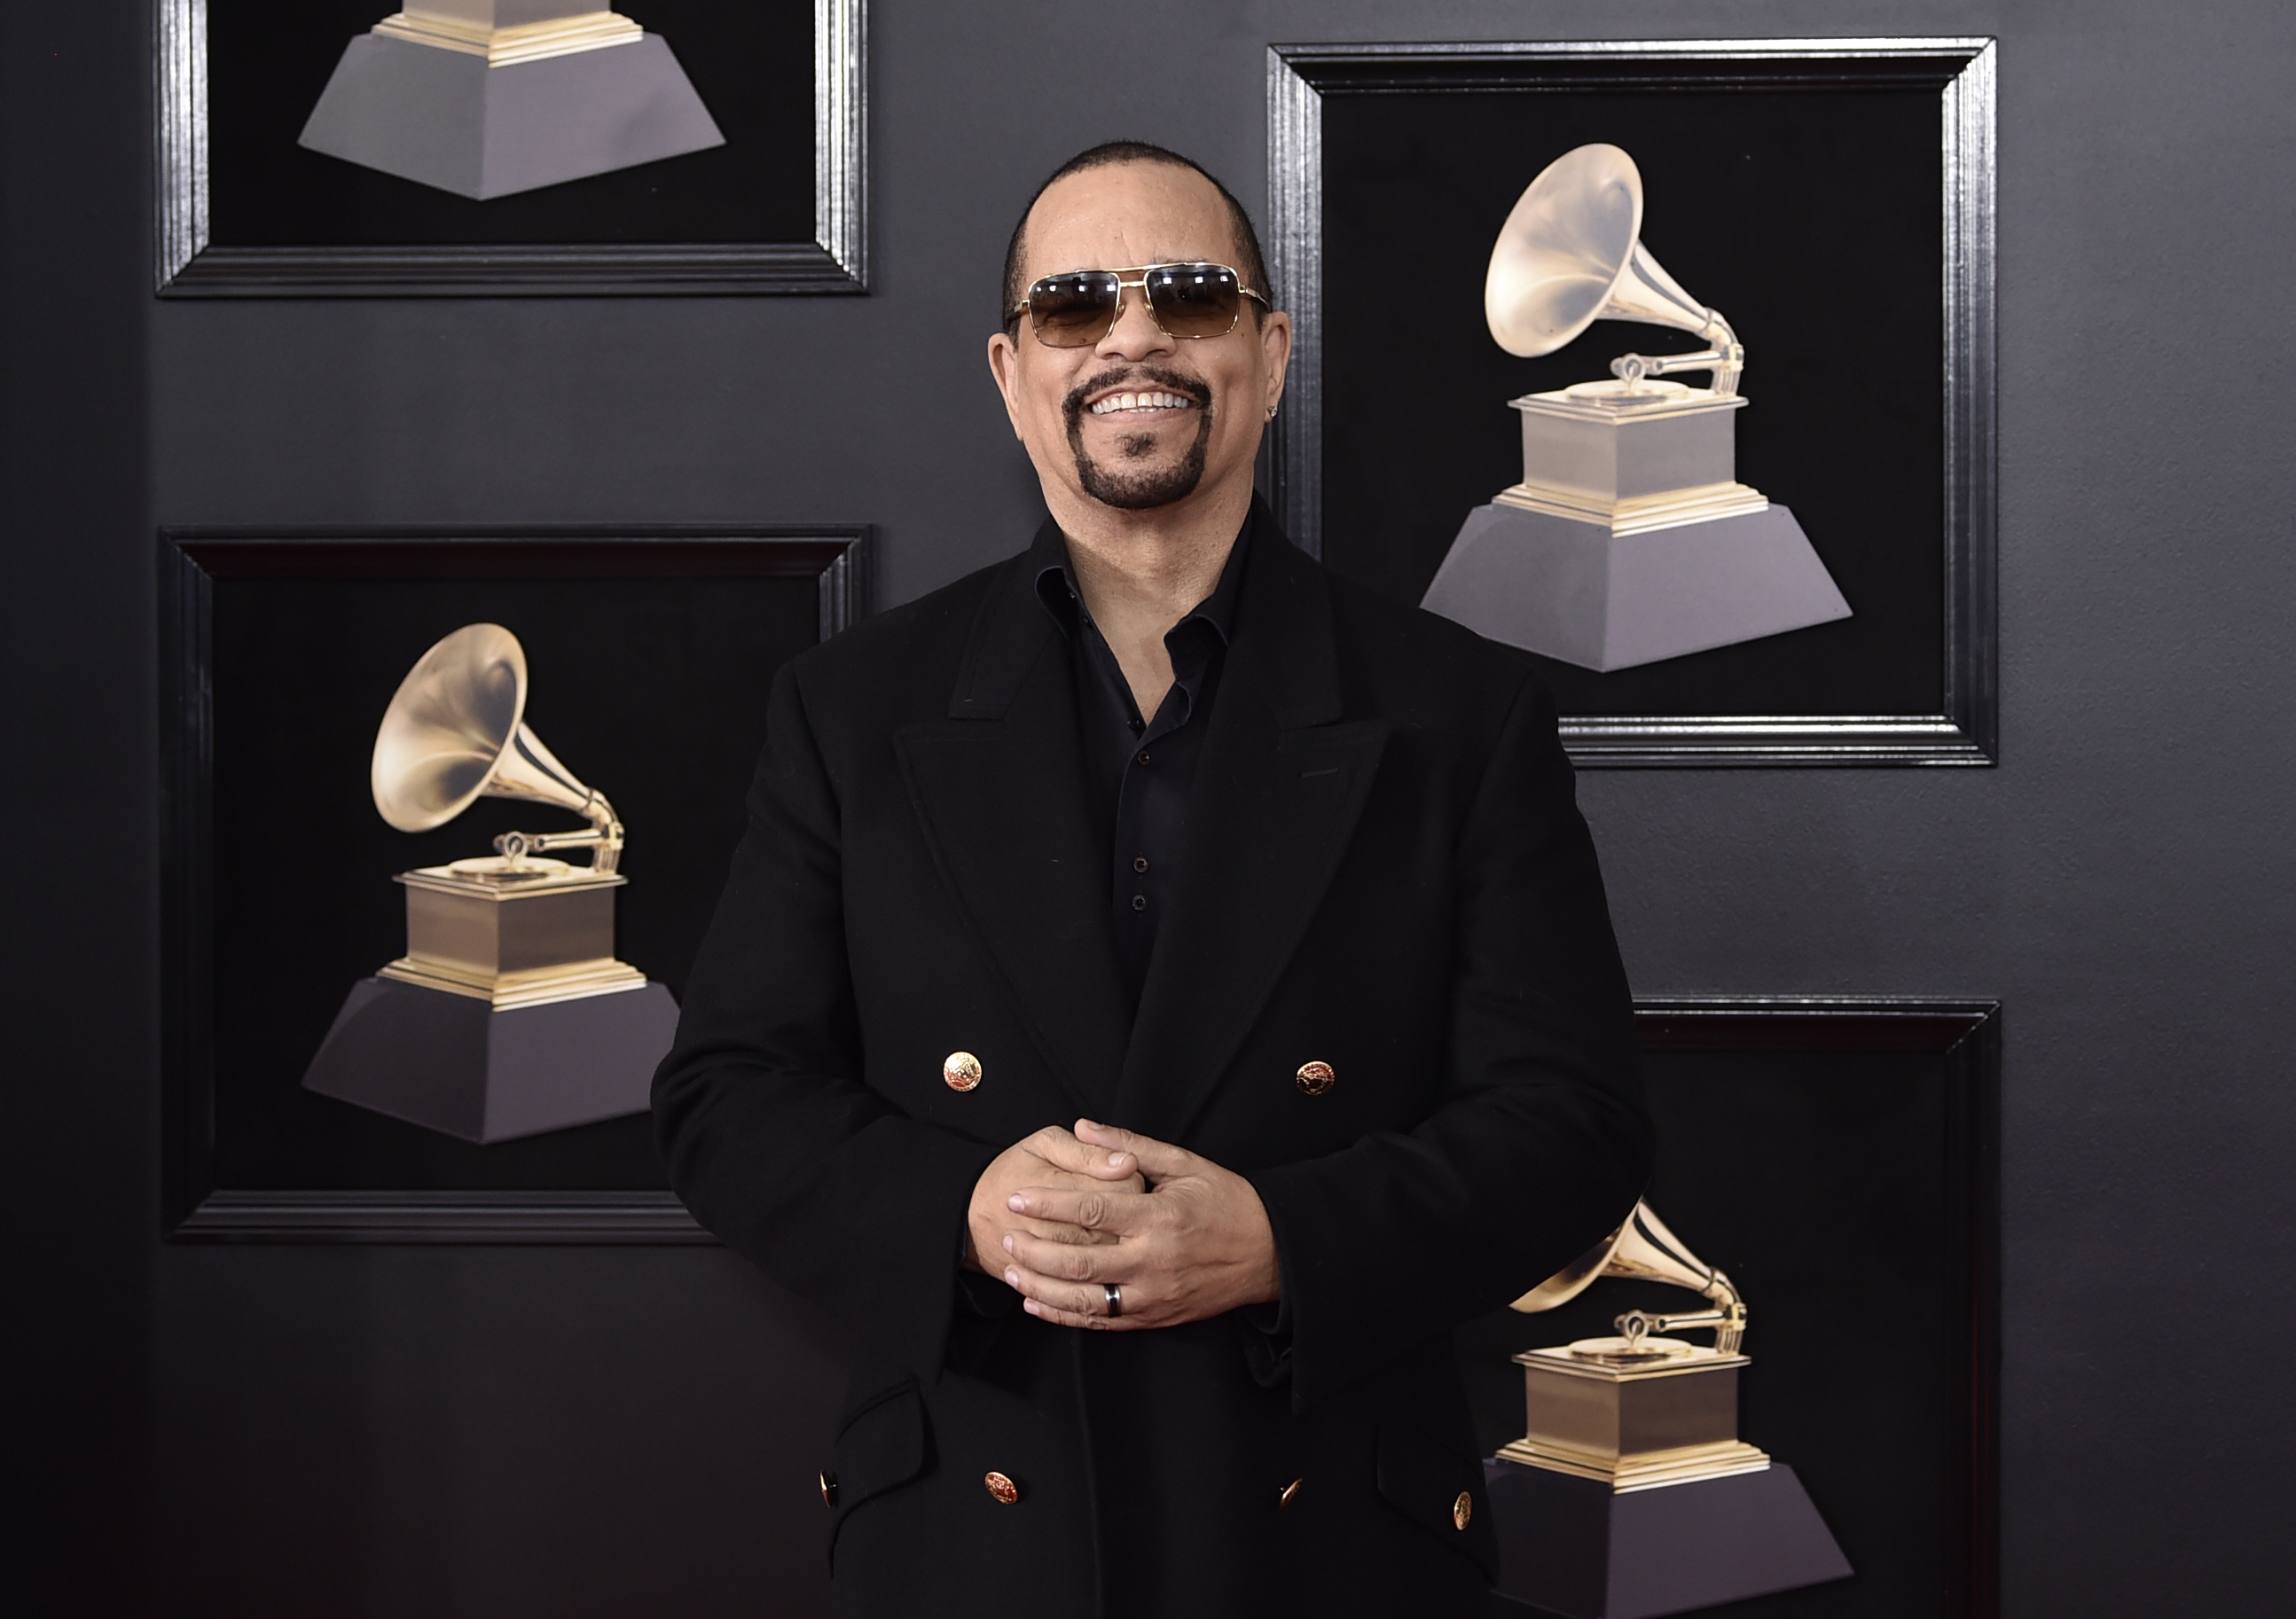 <div class='meta'><div class='origin-logo' data-origin='AP'></div><span class='caption-text' data-credit='Evan Agostini/Invision/AP'>Ice-T arrives at the 60th annual Grammy Awards at Madison Square Garden on Sunday, Jan. 28, 2018, in New York.</span></div>